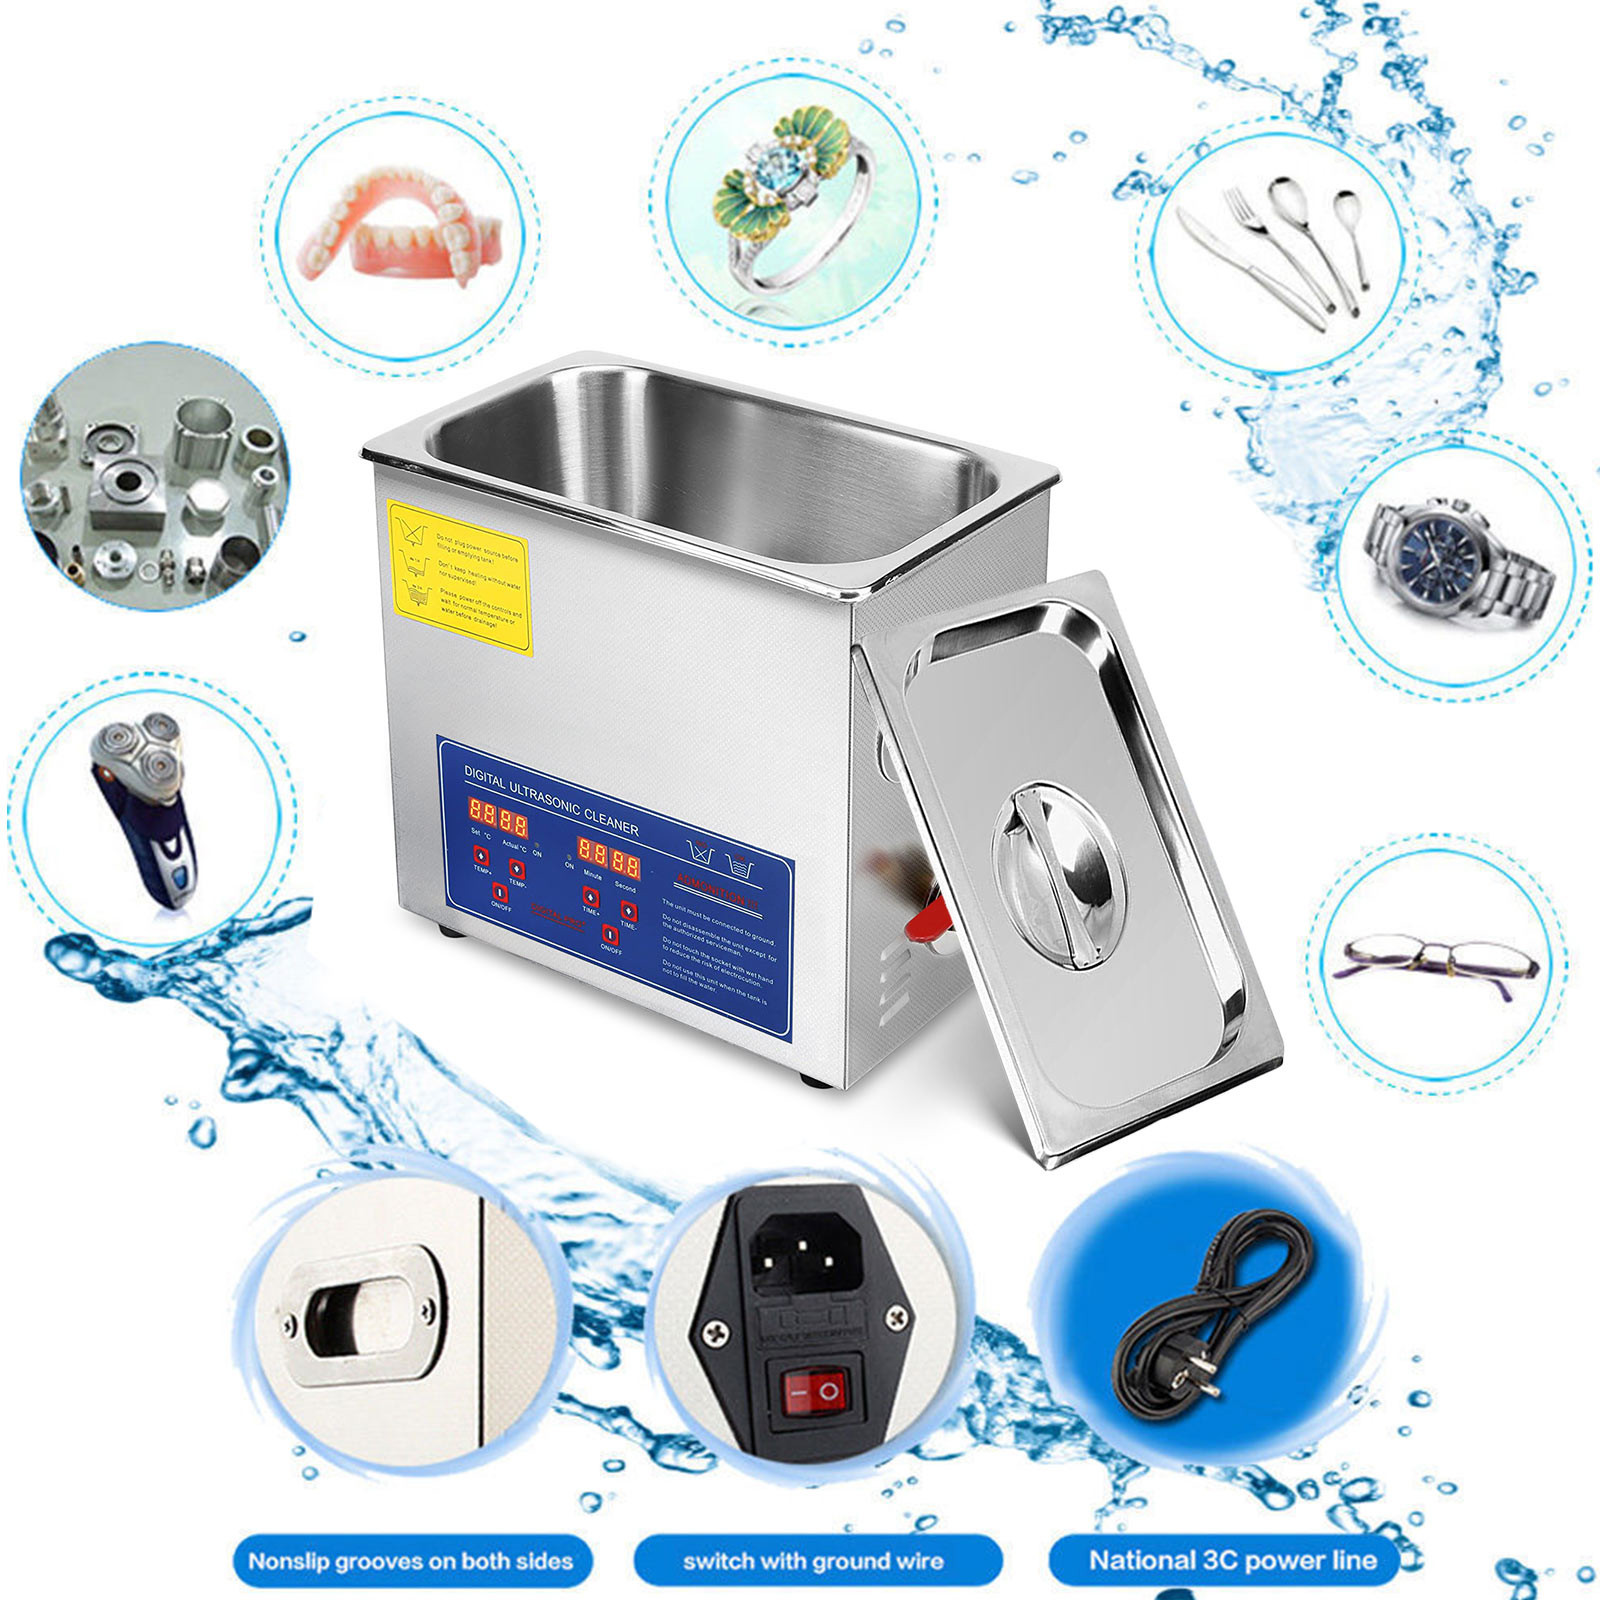 Multi-Ultrasonic-Cleaner-Supplies-Jewelry-1-3-2L-3L-6L-10L-15L-22L-30L thumbnail 81